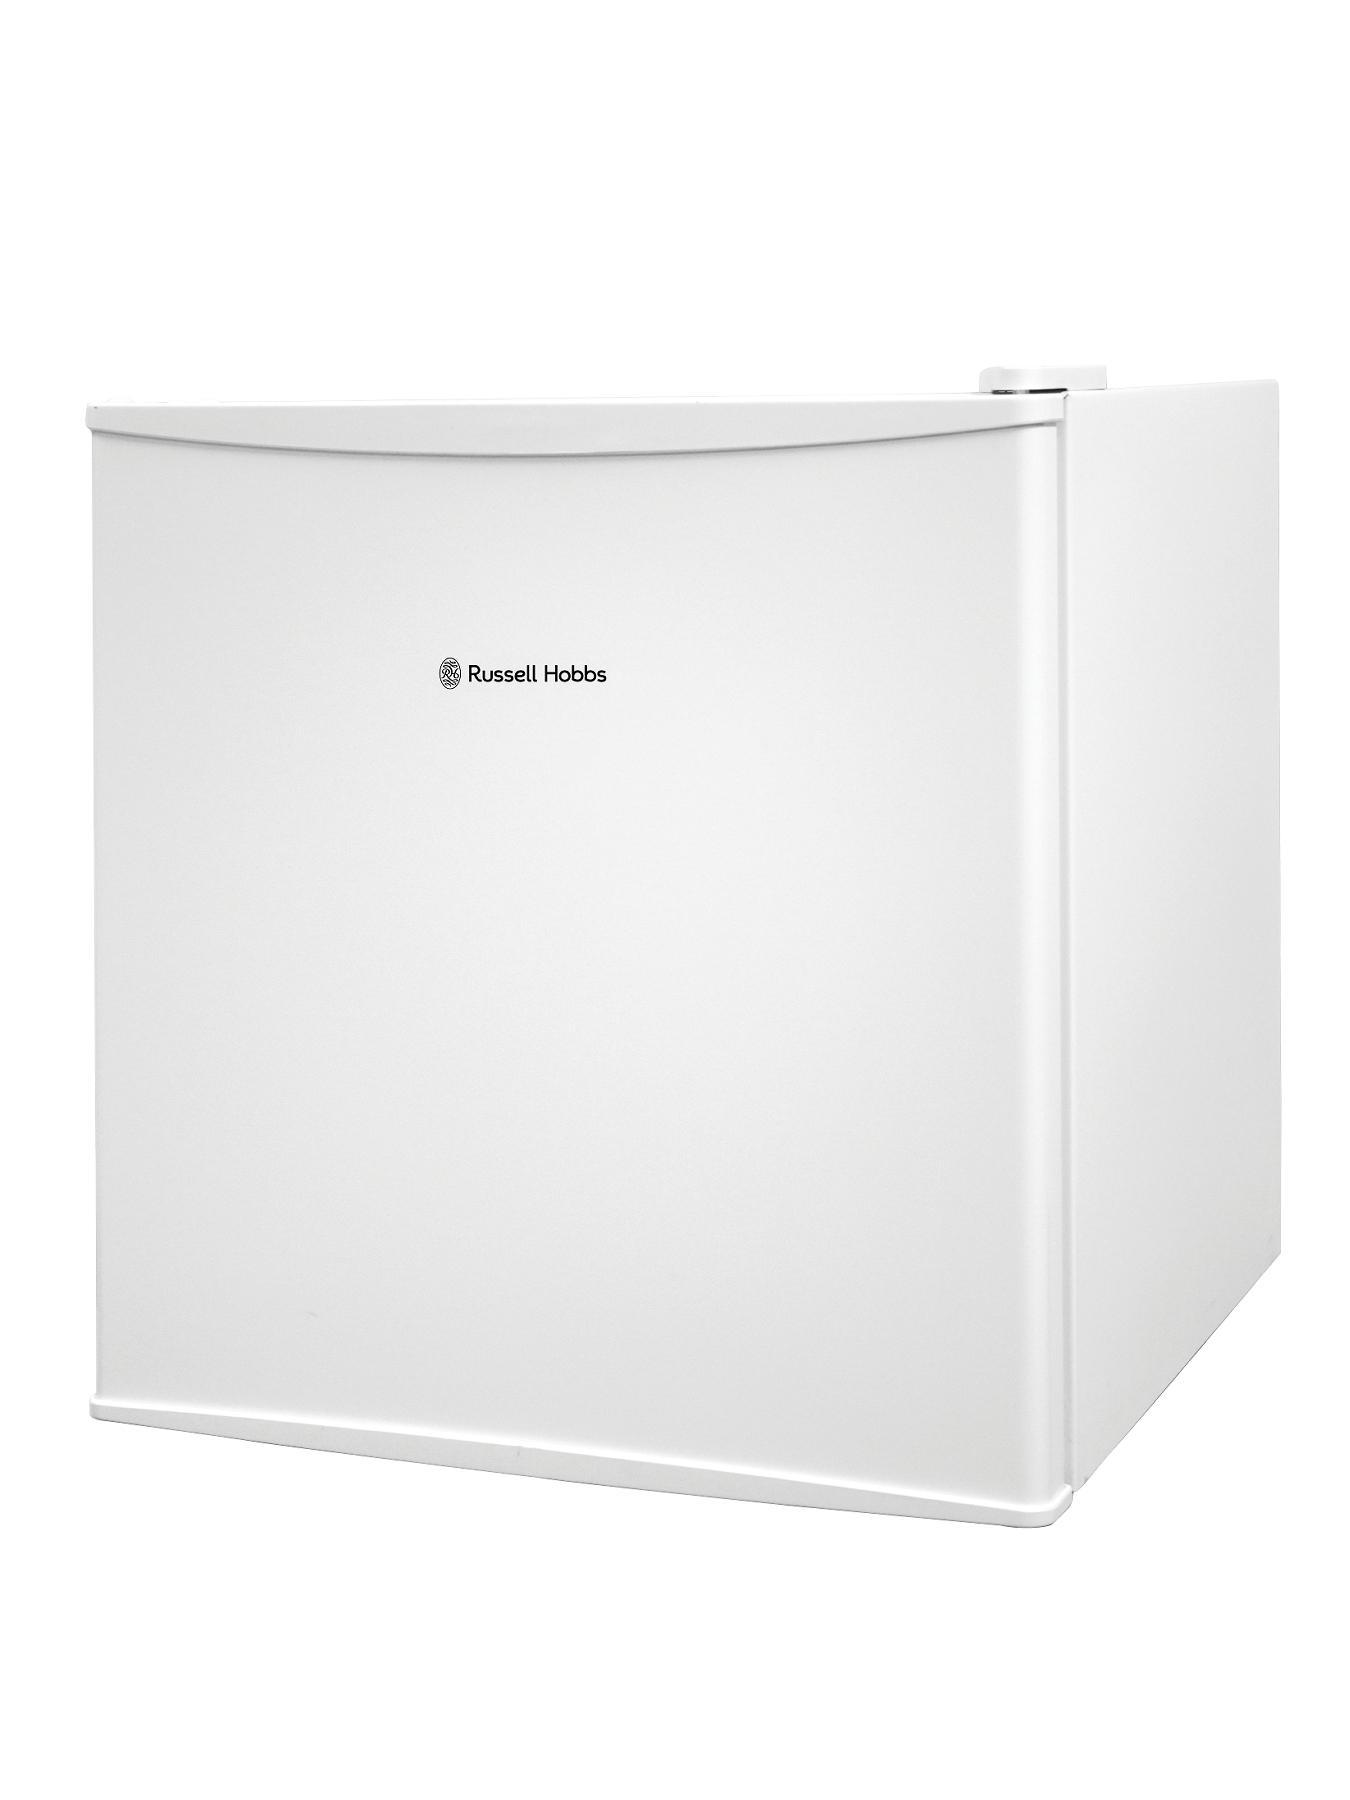 RHTTFZ1 Table Top Freezer - White at Littlewoods